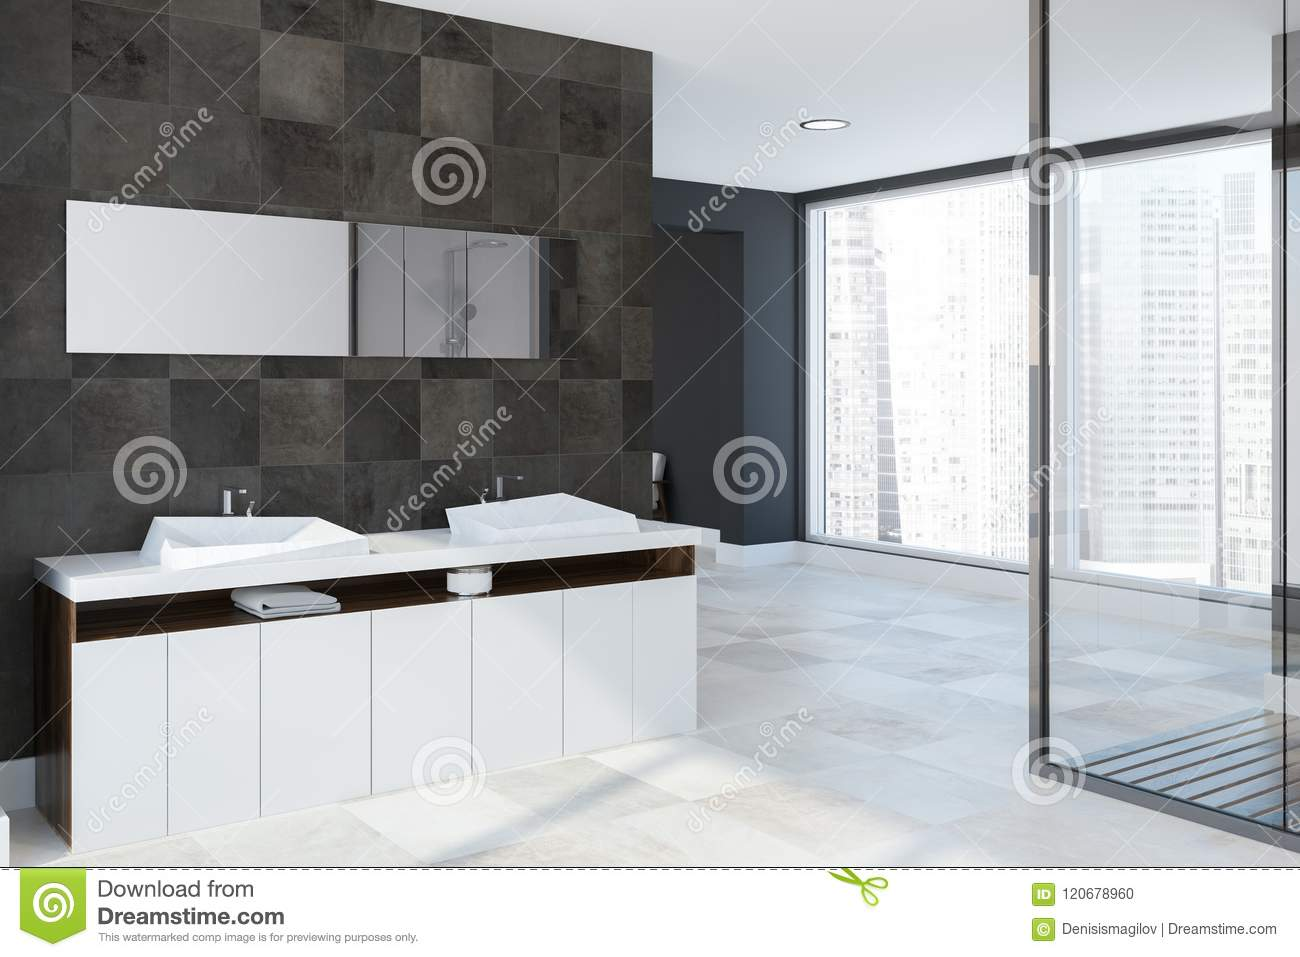 White Twin Sink Vanity Unit Tiled Bathroom Corner Stock Illustration Illustration Of Bathroom Contemporary 120678960